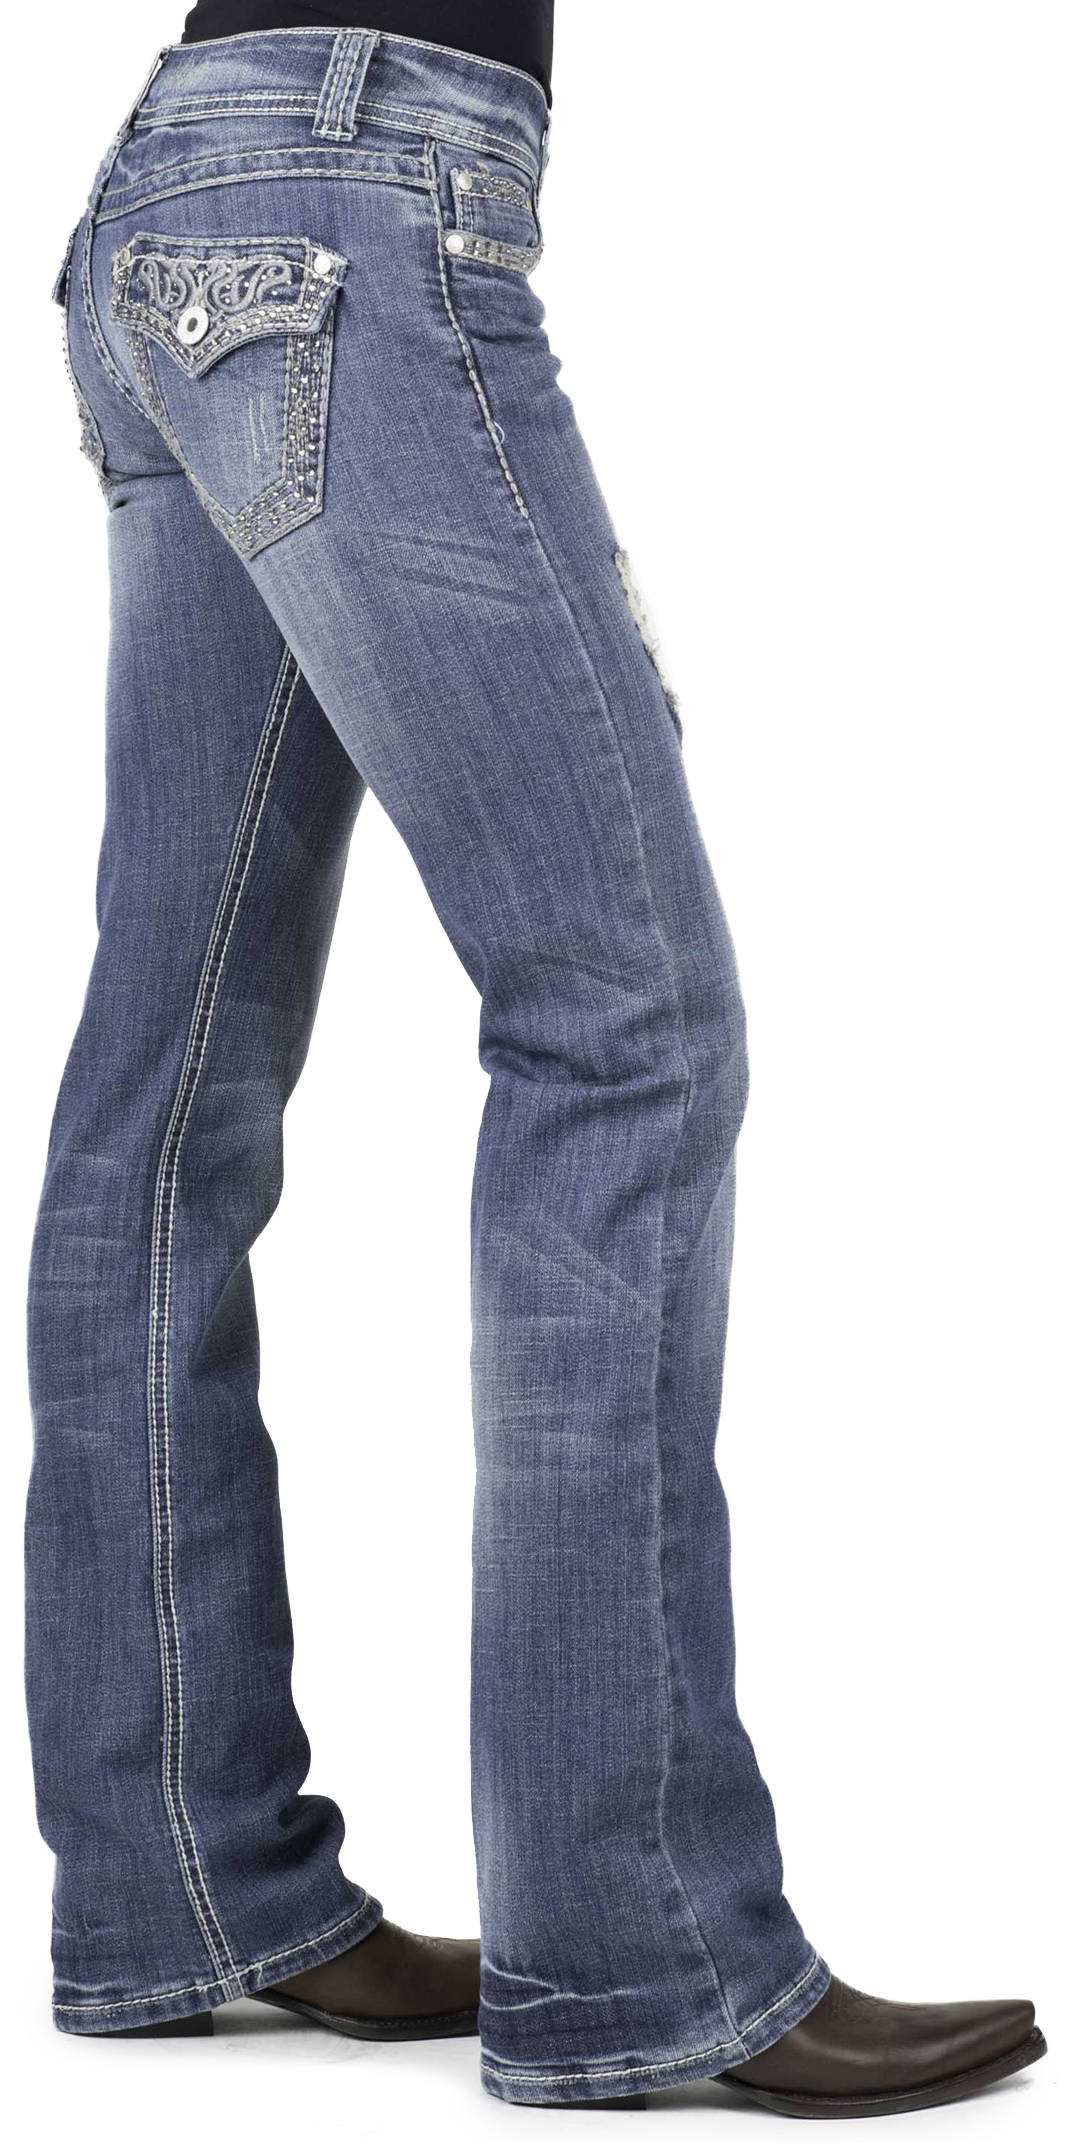 stetson women Sears has women's jeans in fashionable colors and styles find everything from flare-cut designs to skinny jeans to enhance your wardrobe.